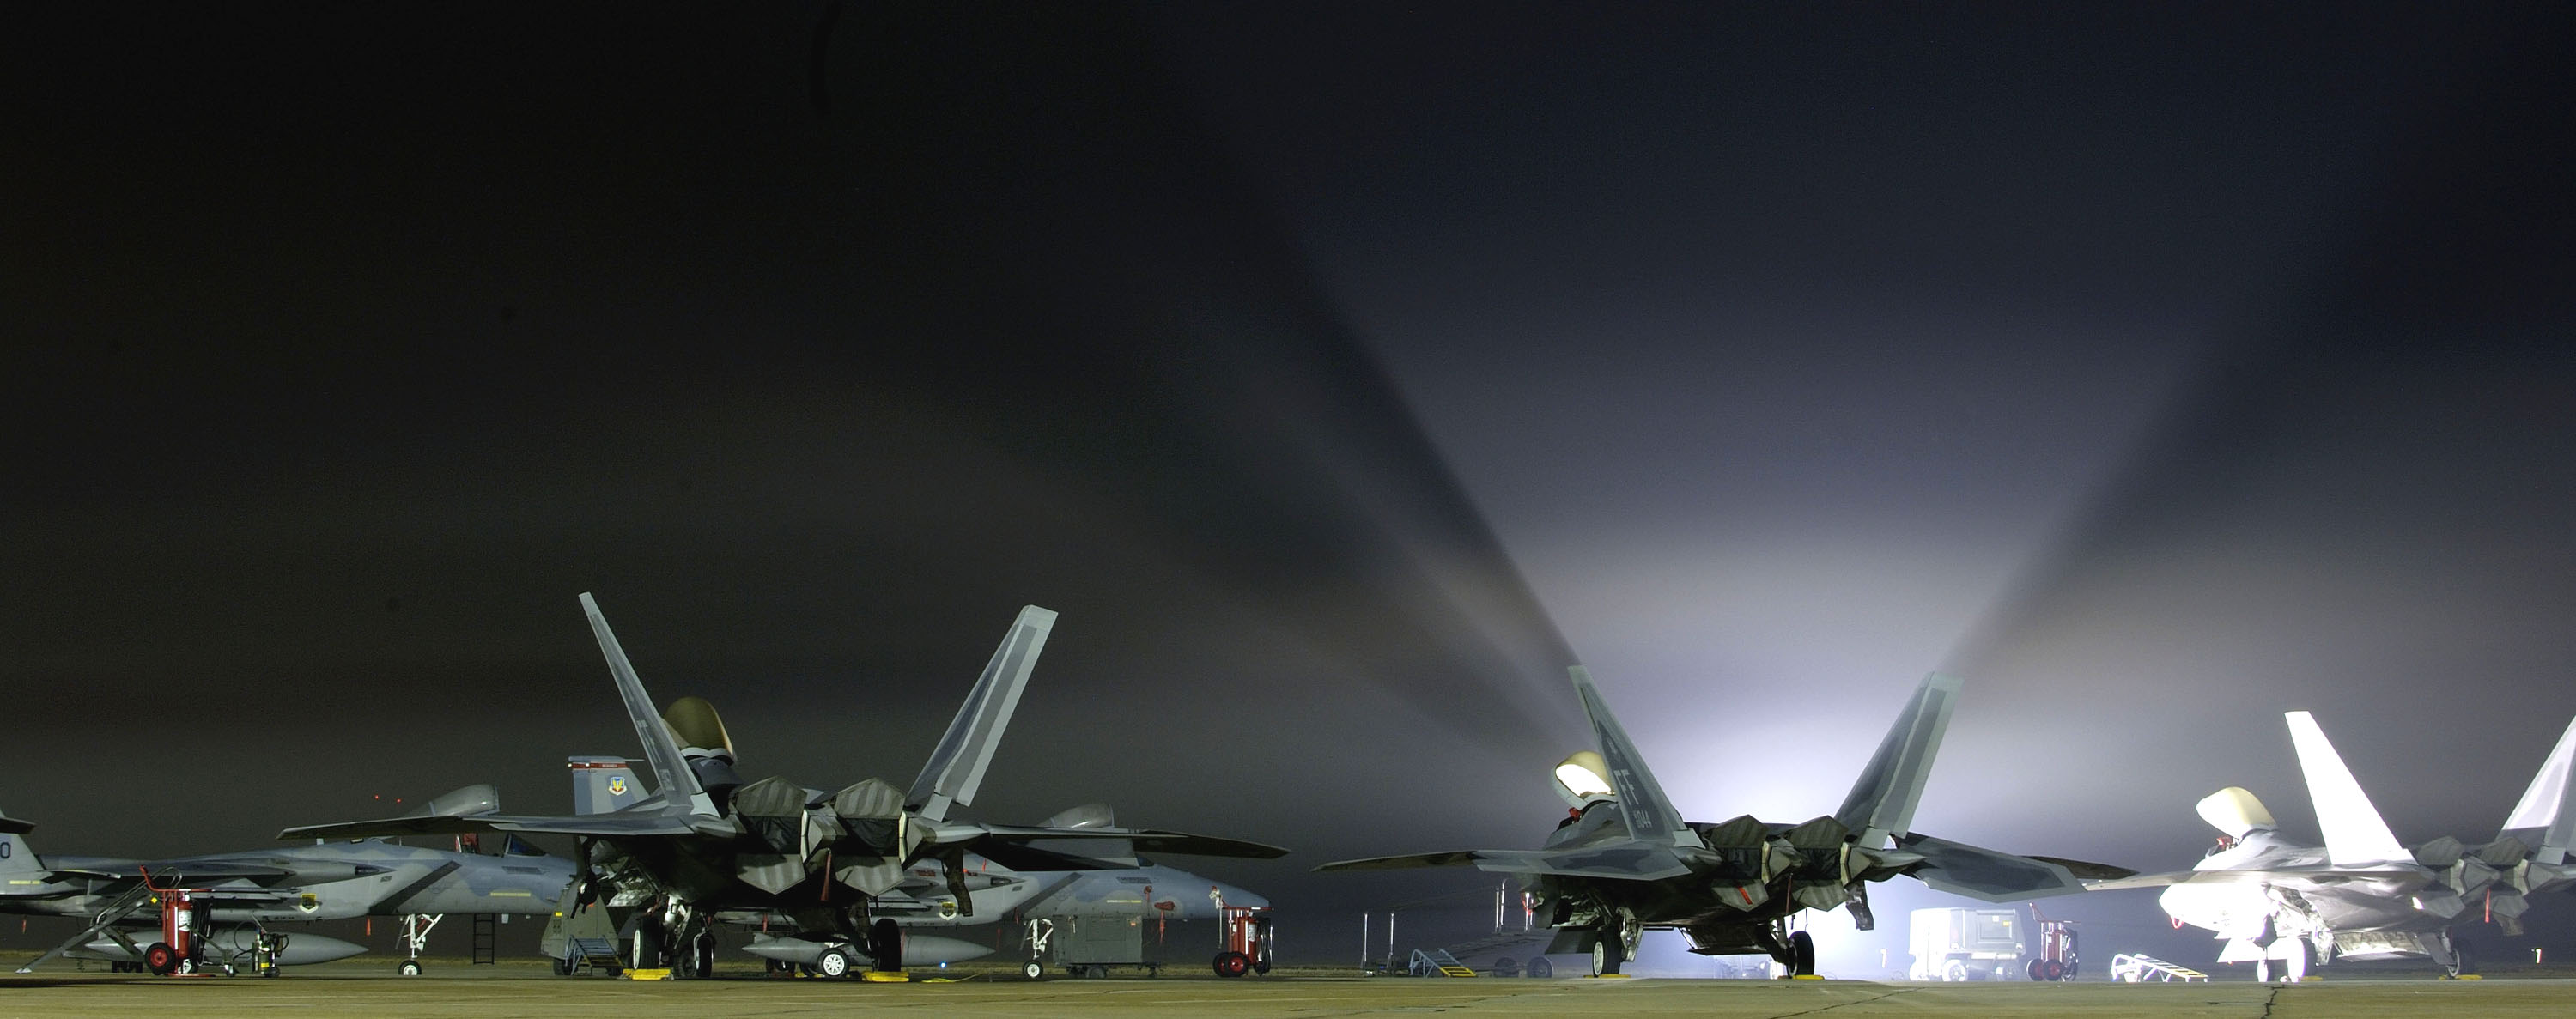 Multi Monitor Dual Screen military jet fighter weapons wallpaper 3000x1187